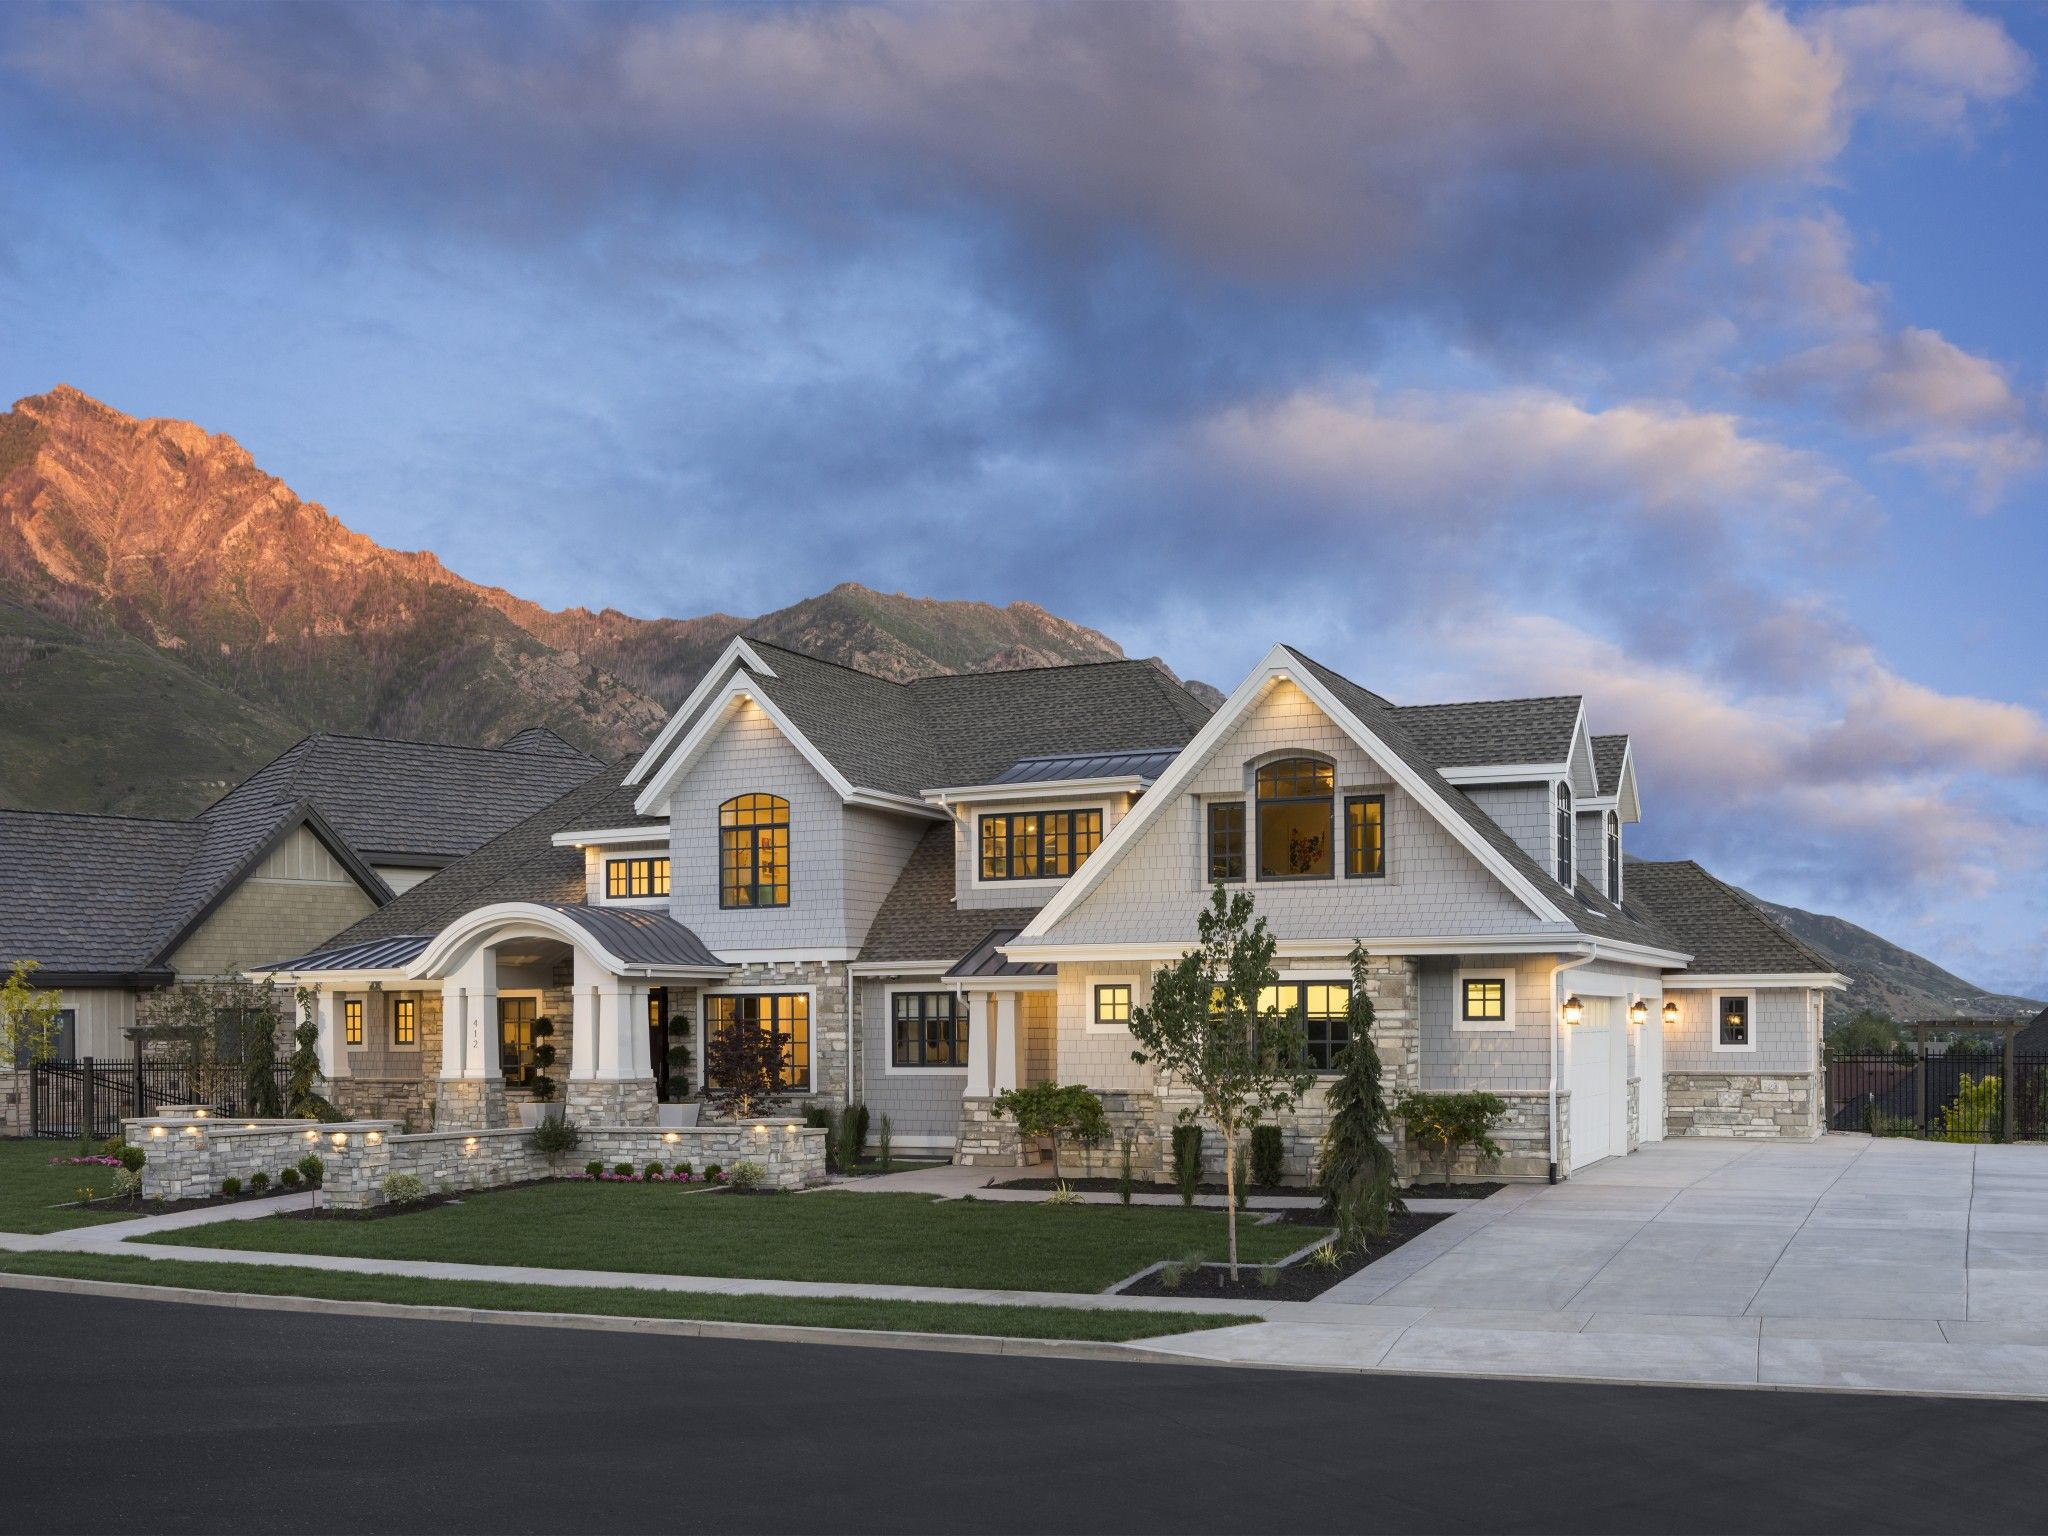 McEwan Residence PureHaven Homes Craftsman style house